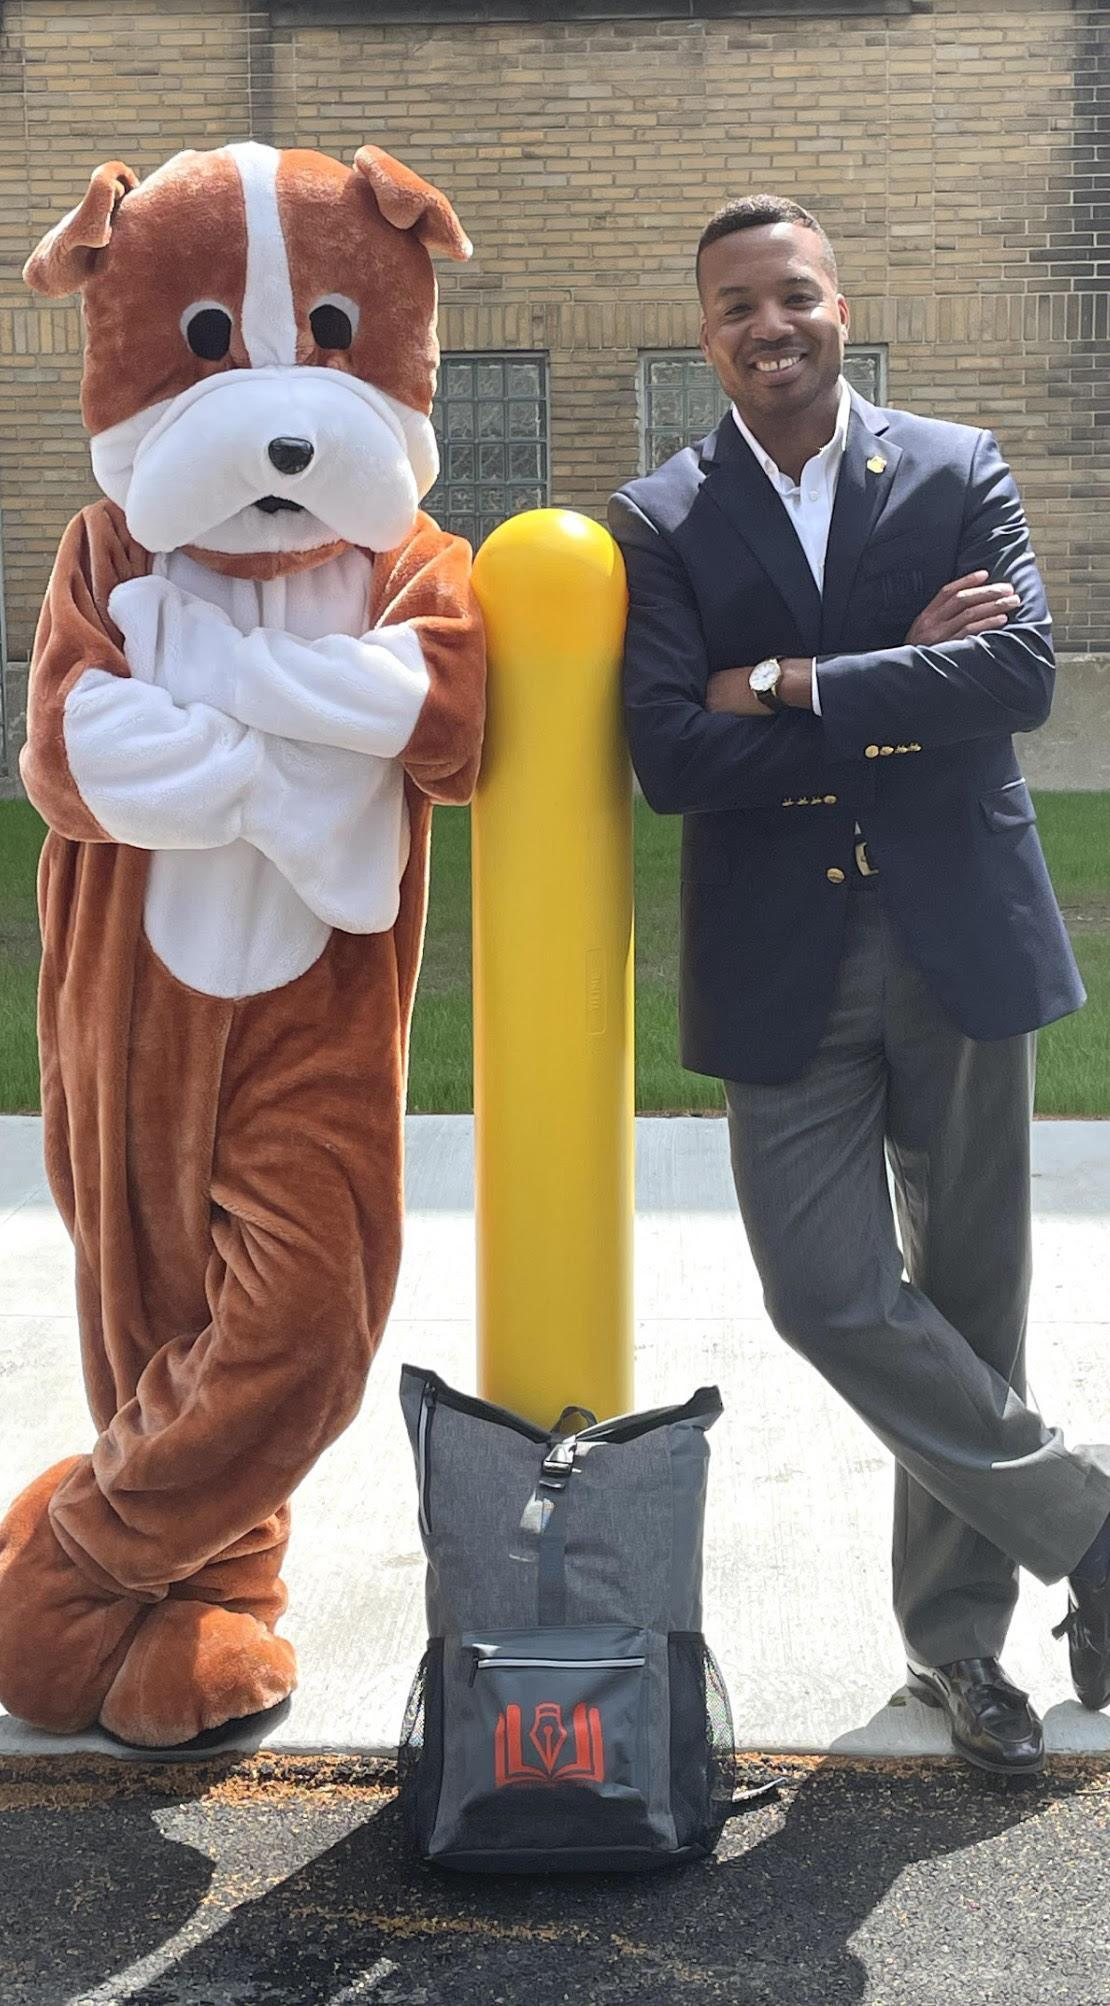 CEO with Mascot